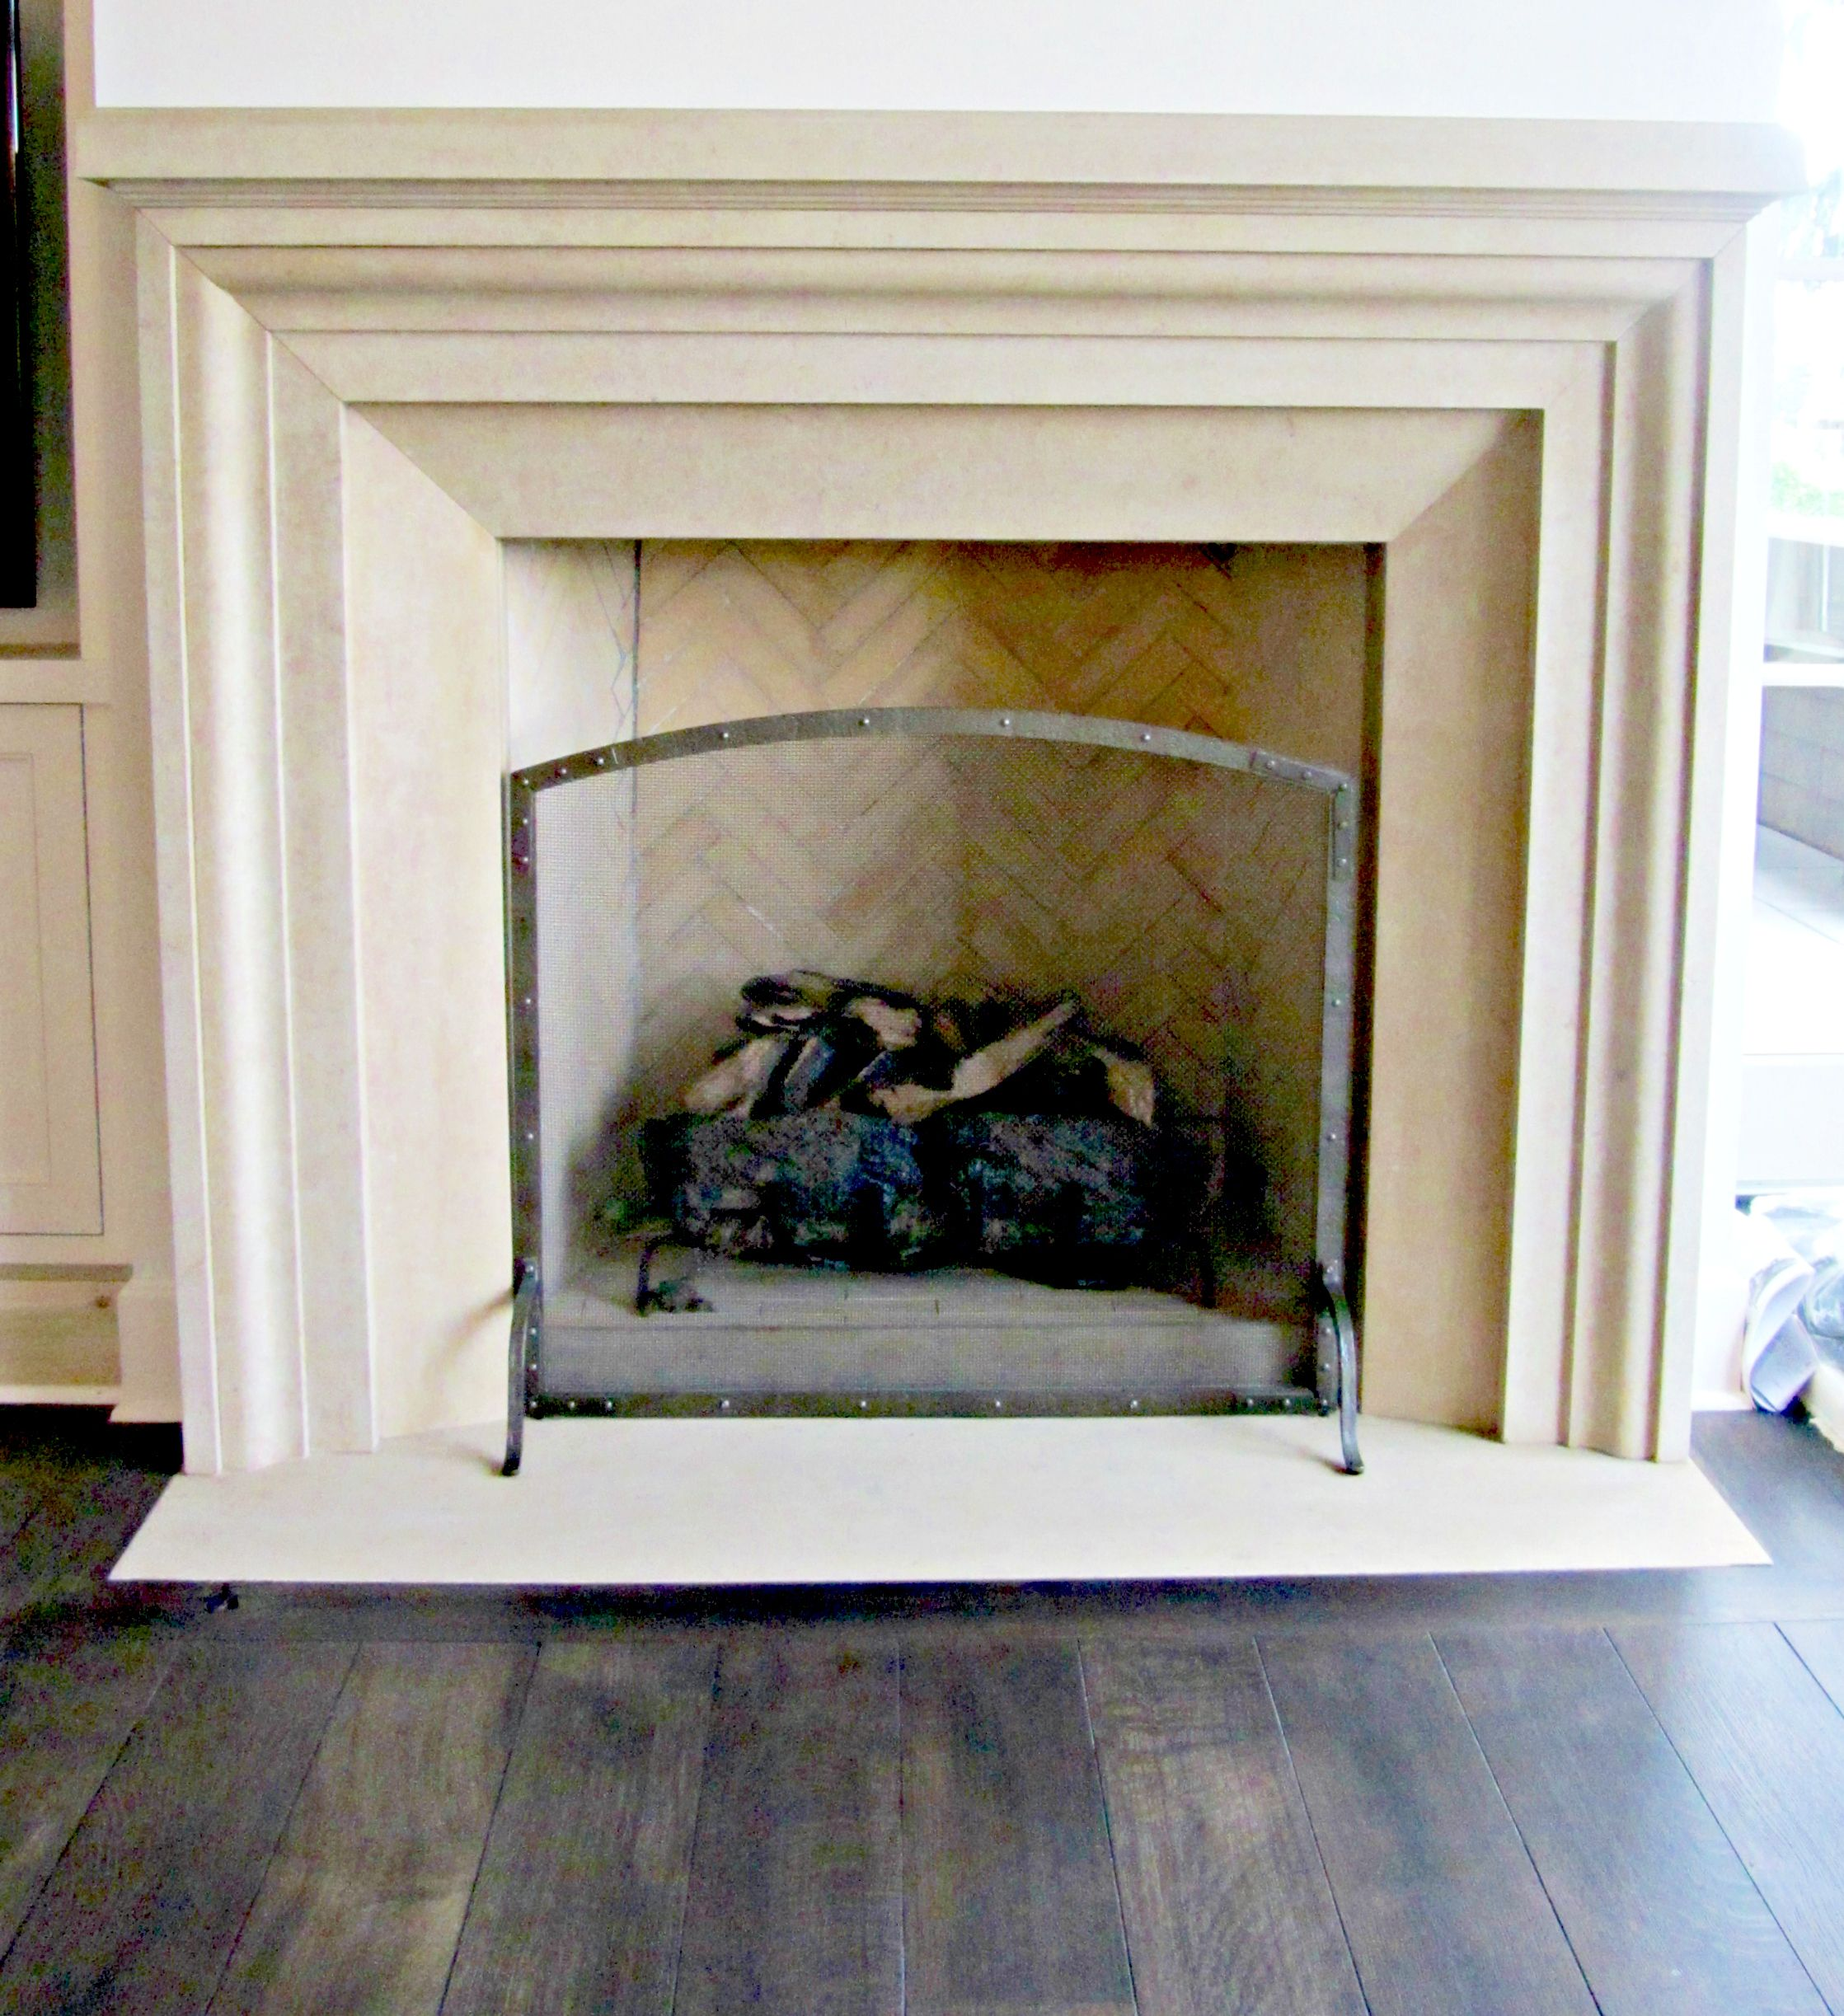 tepperman samuel s firebox firplace fireplace fi electric